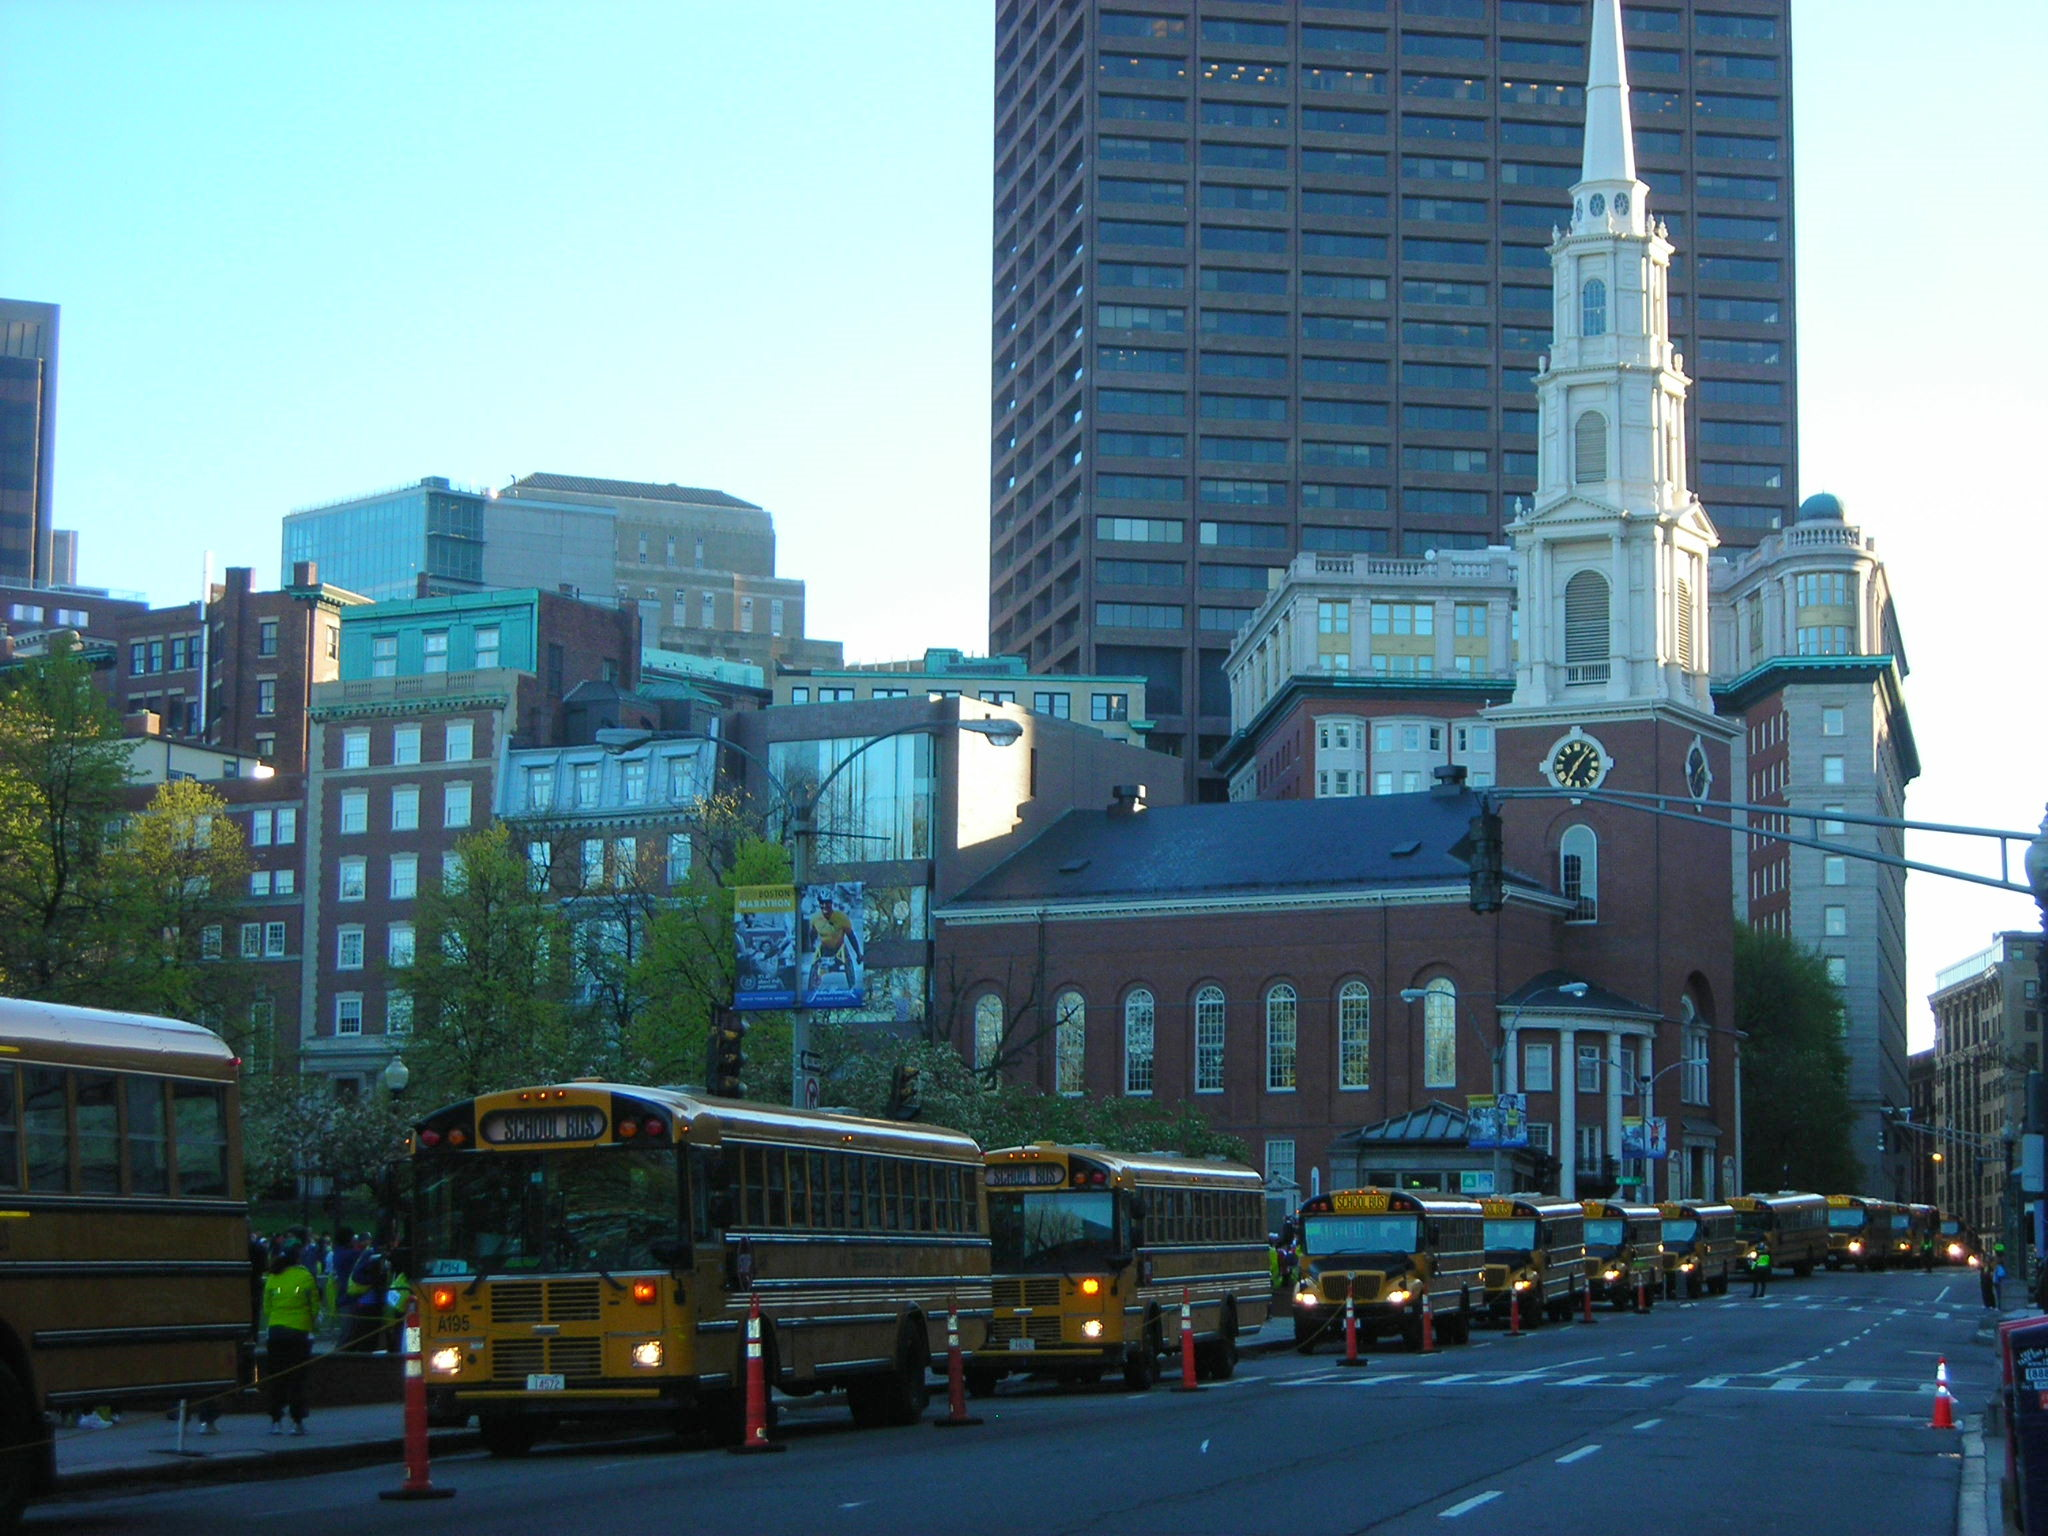 Monday morning. Race Day. Lots of Busses. Boston Commons.